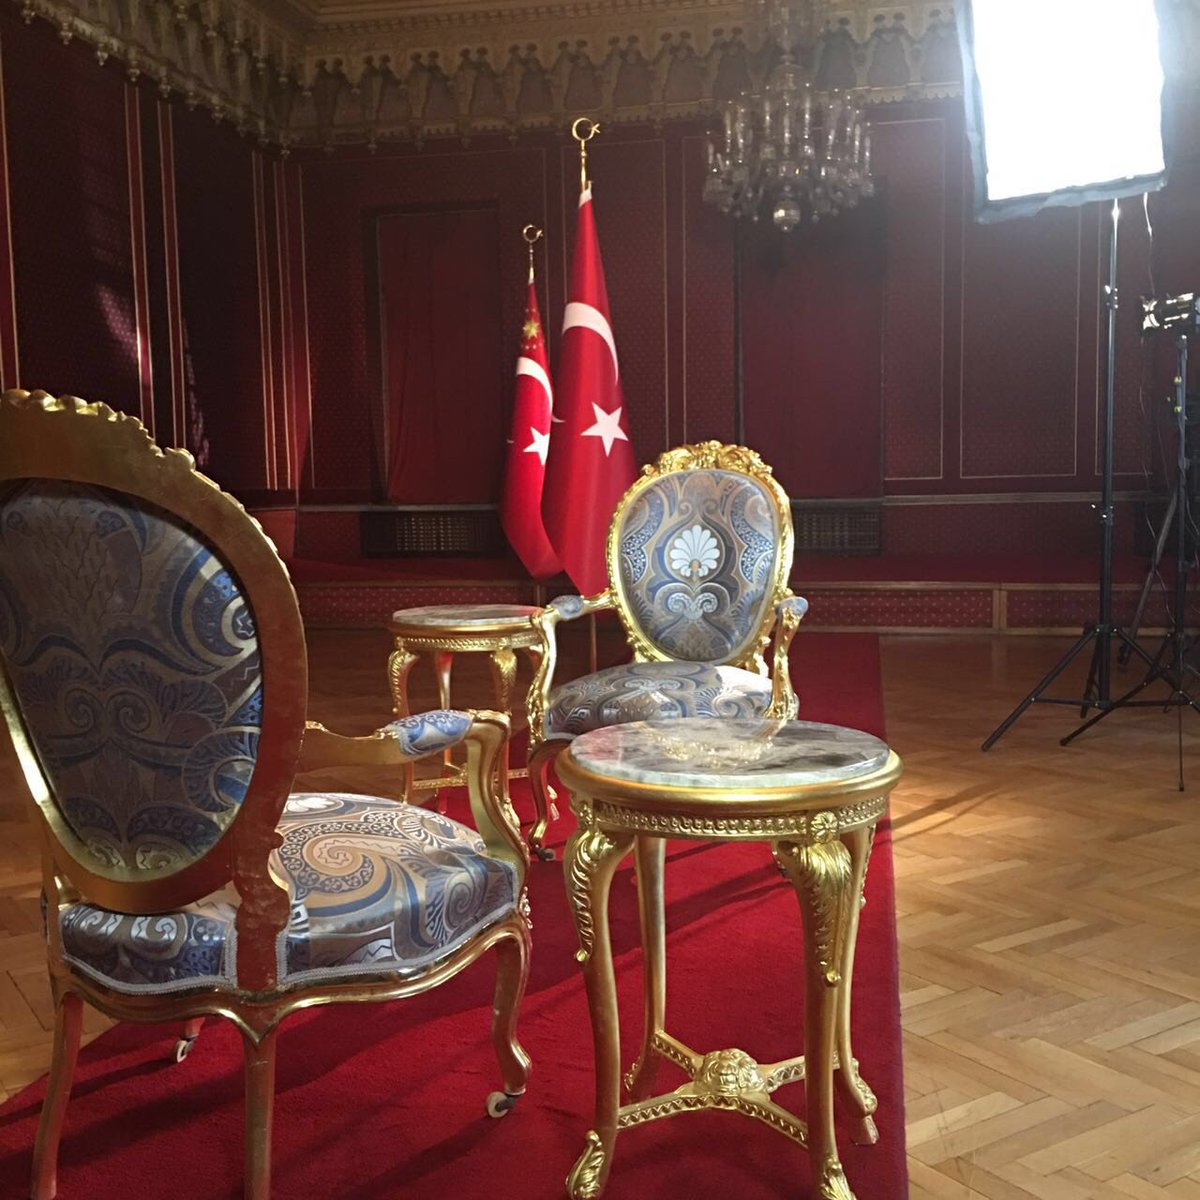 In Turkey for a @cnni world exclusive with President #Erdogan. It's his very first interview since the coup attempt. https://t.co/v7zt9ATGBB